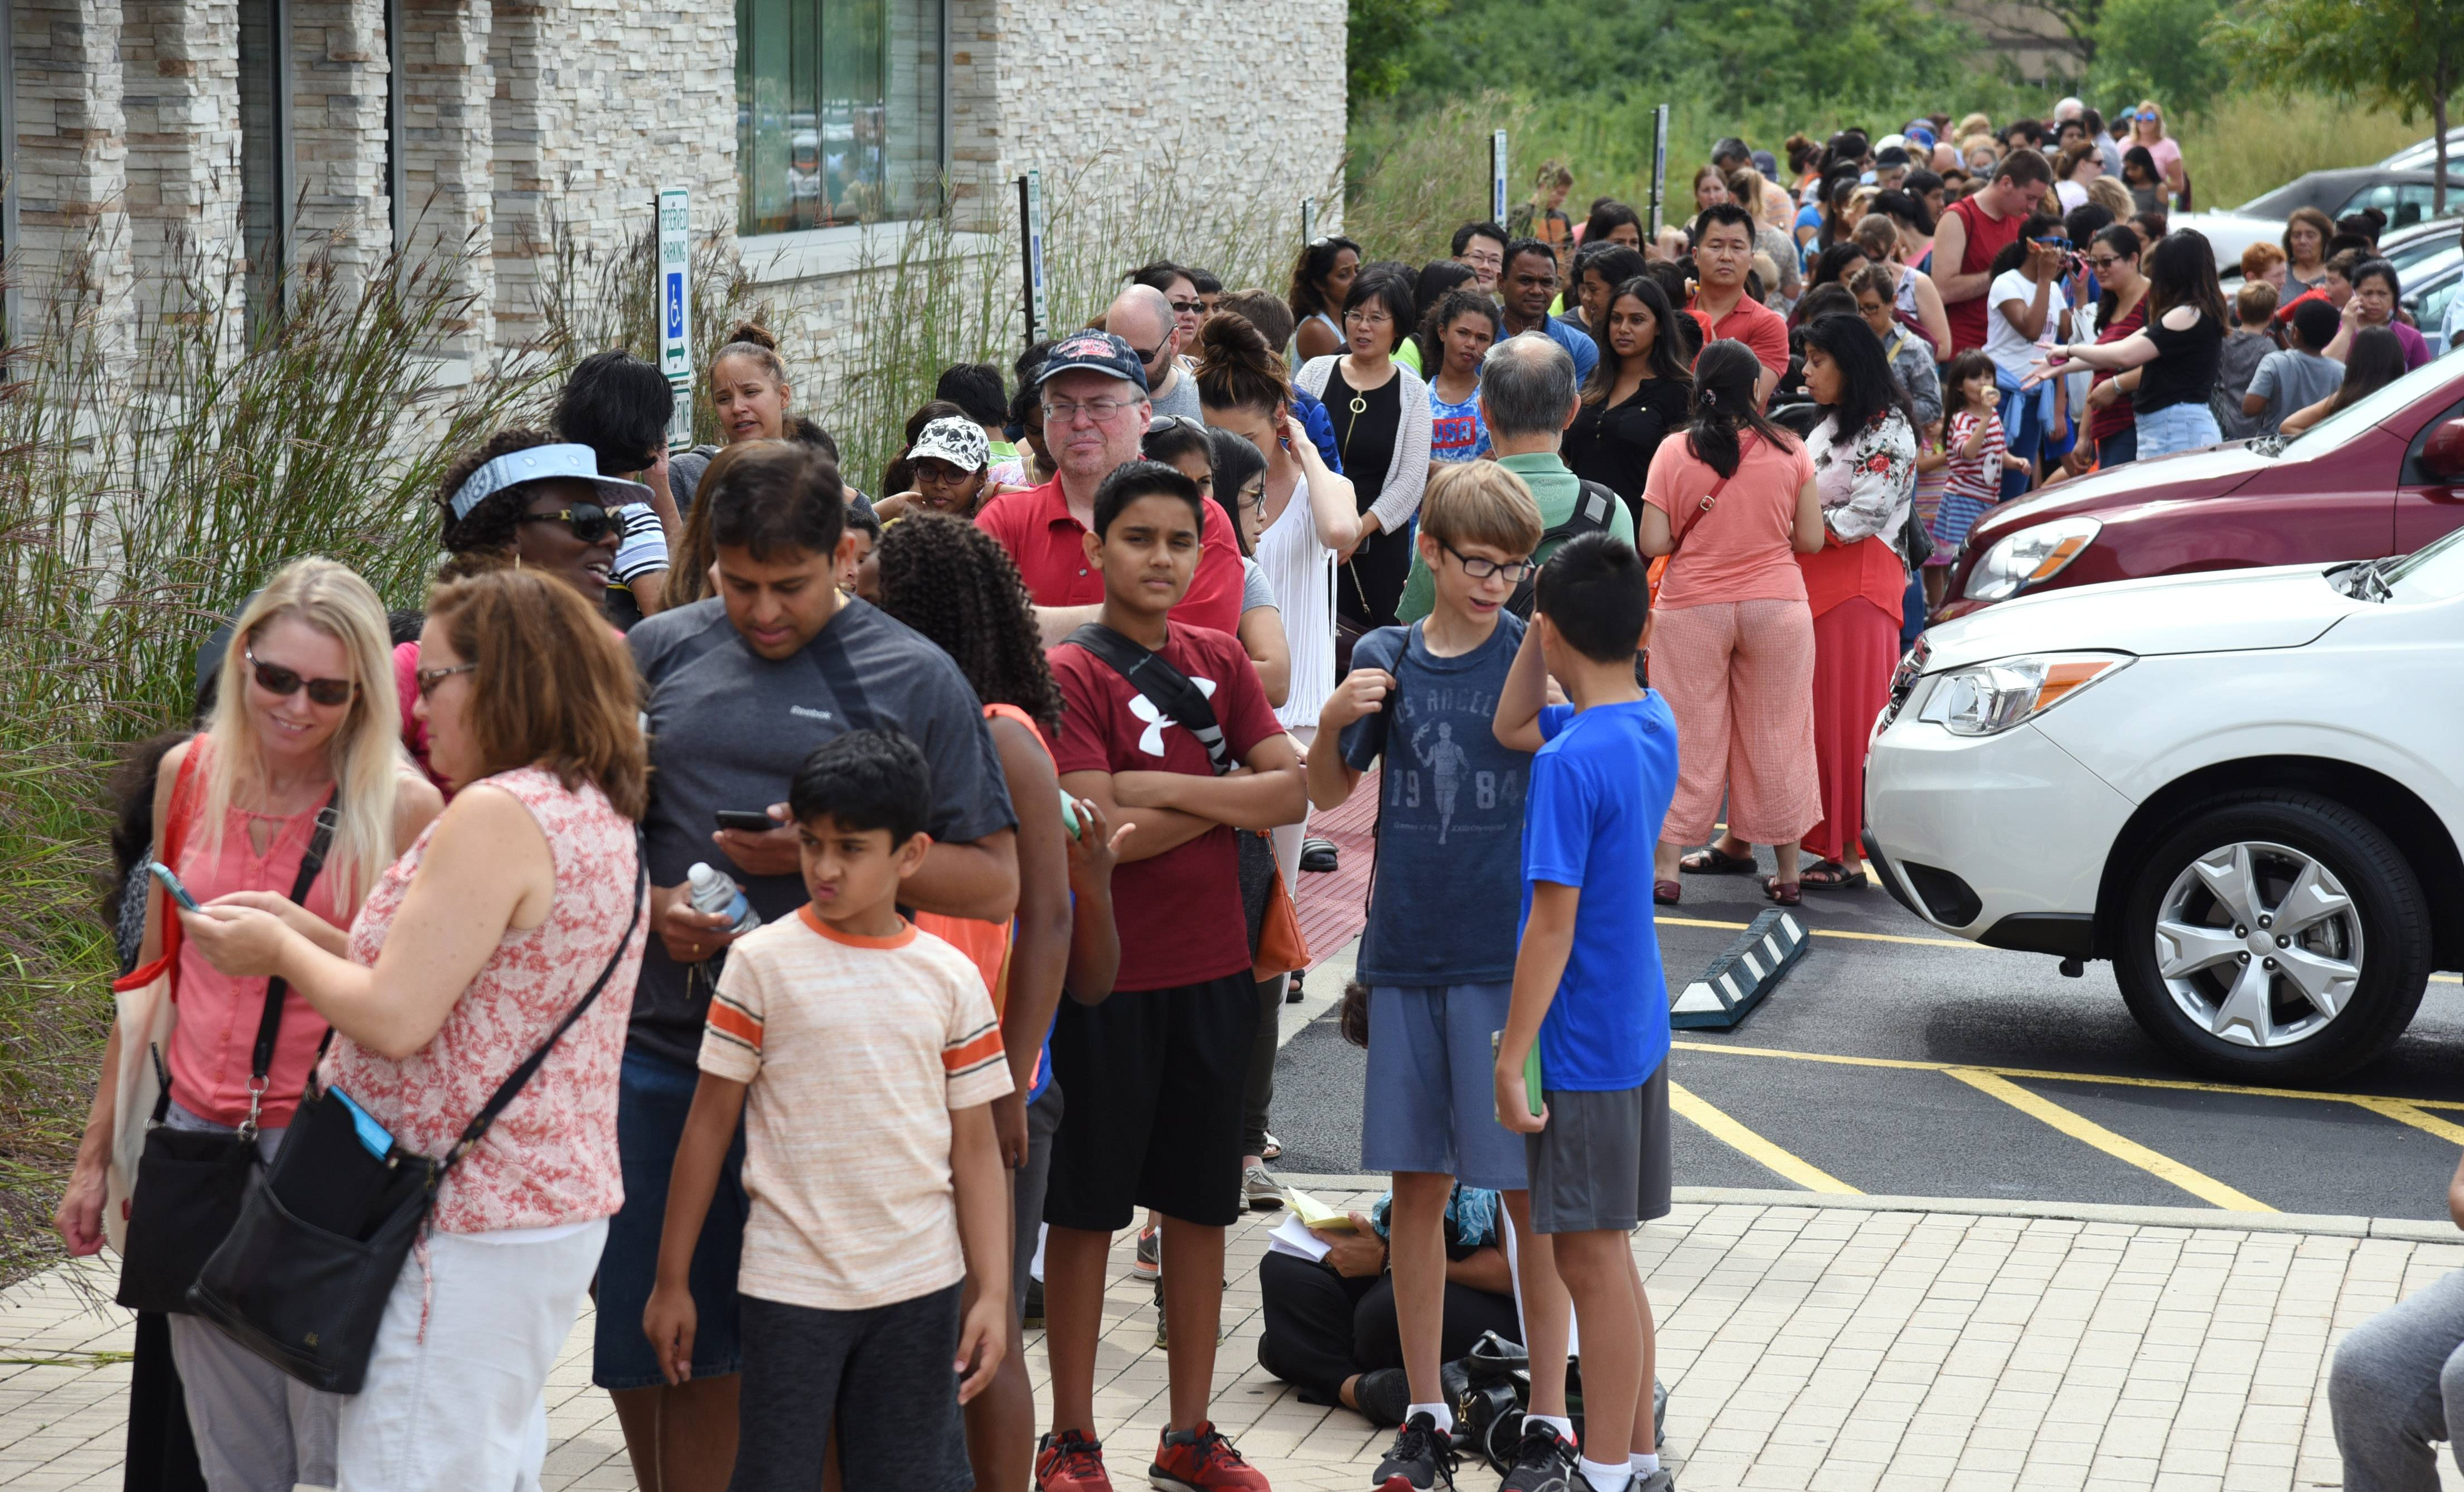 A line forms Monday morning at the Aspen Drive Library in Vernon Hills as patrons hope to get sunglasses to watch the eclipse.